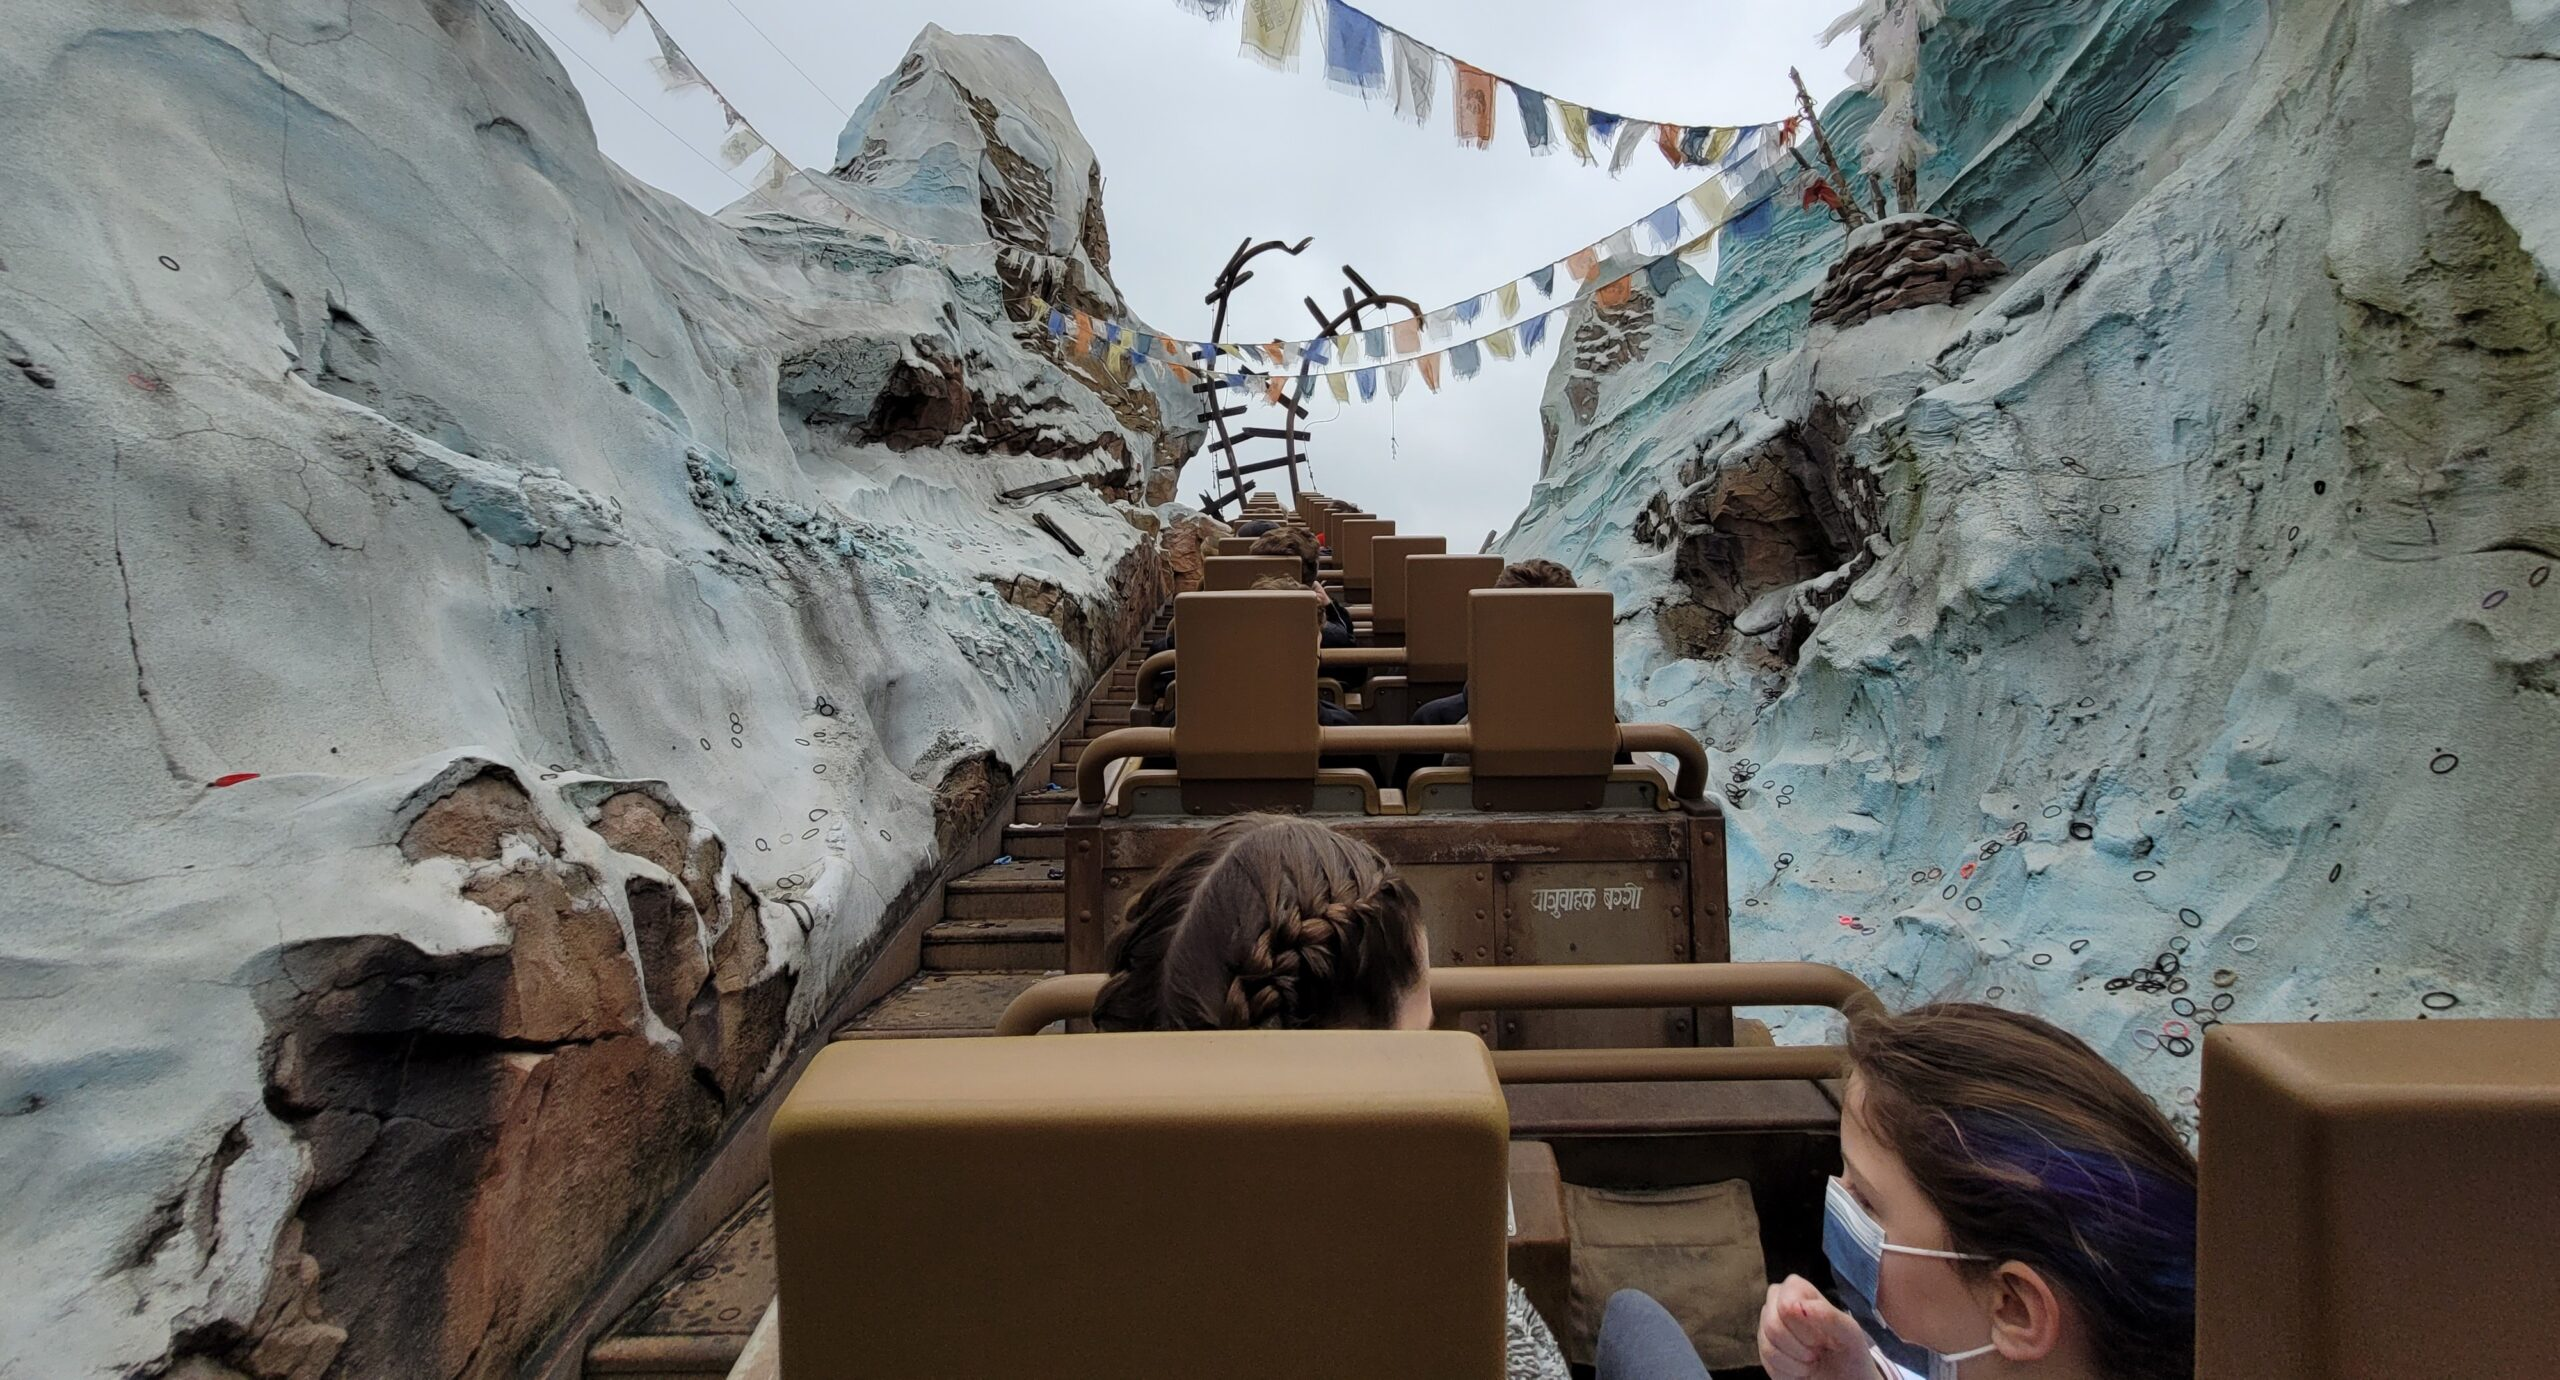 The Top of Expedition Everest